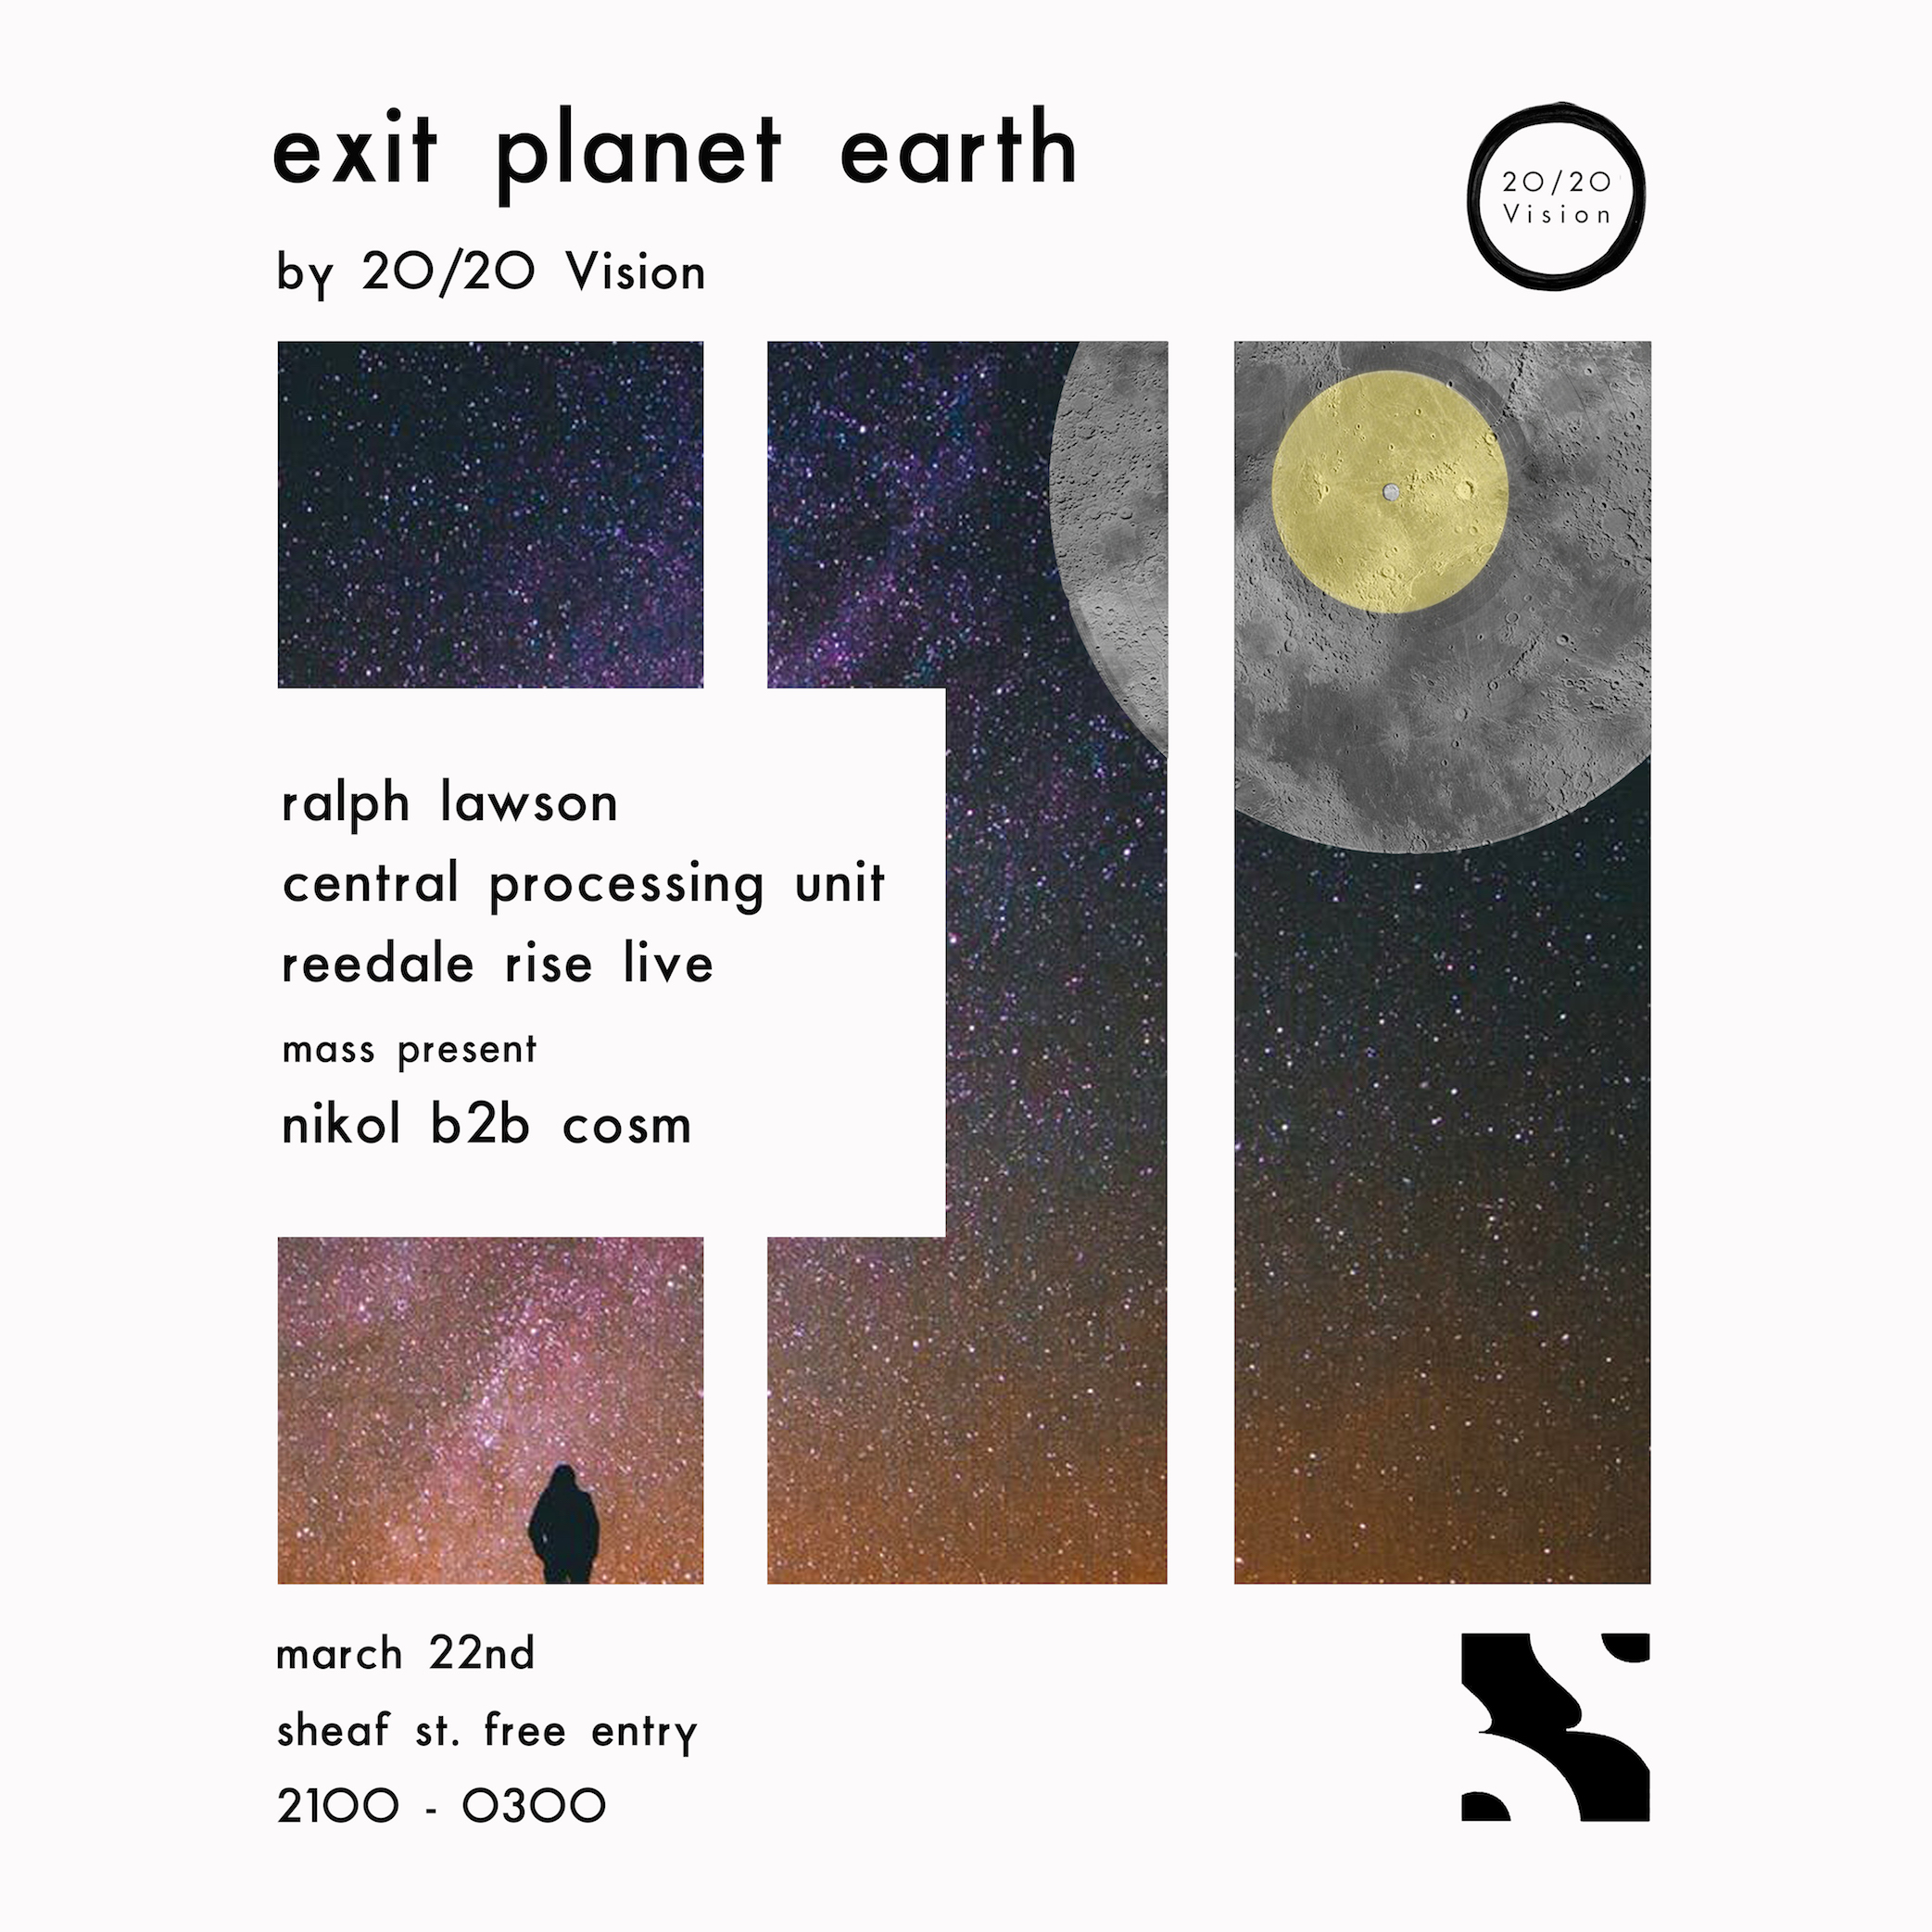 exit planet earth